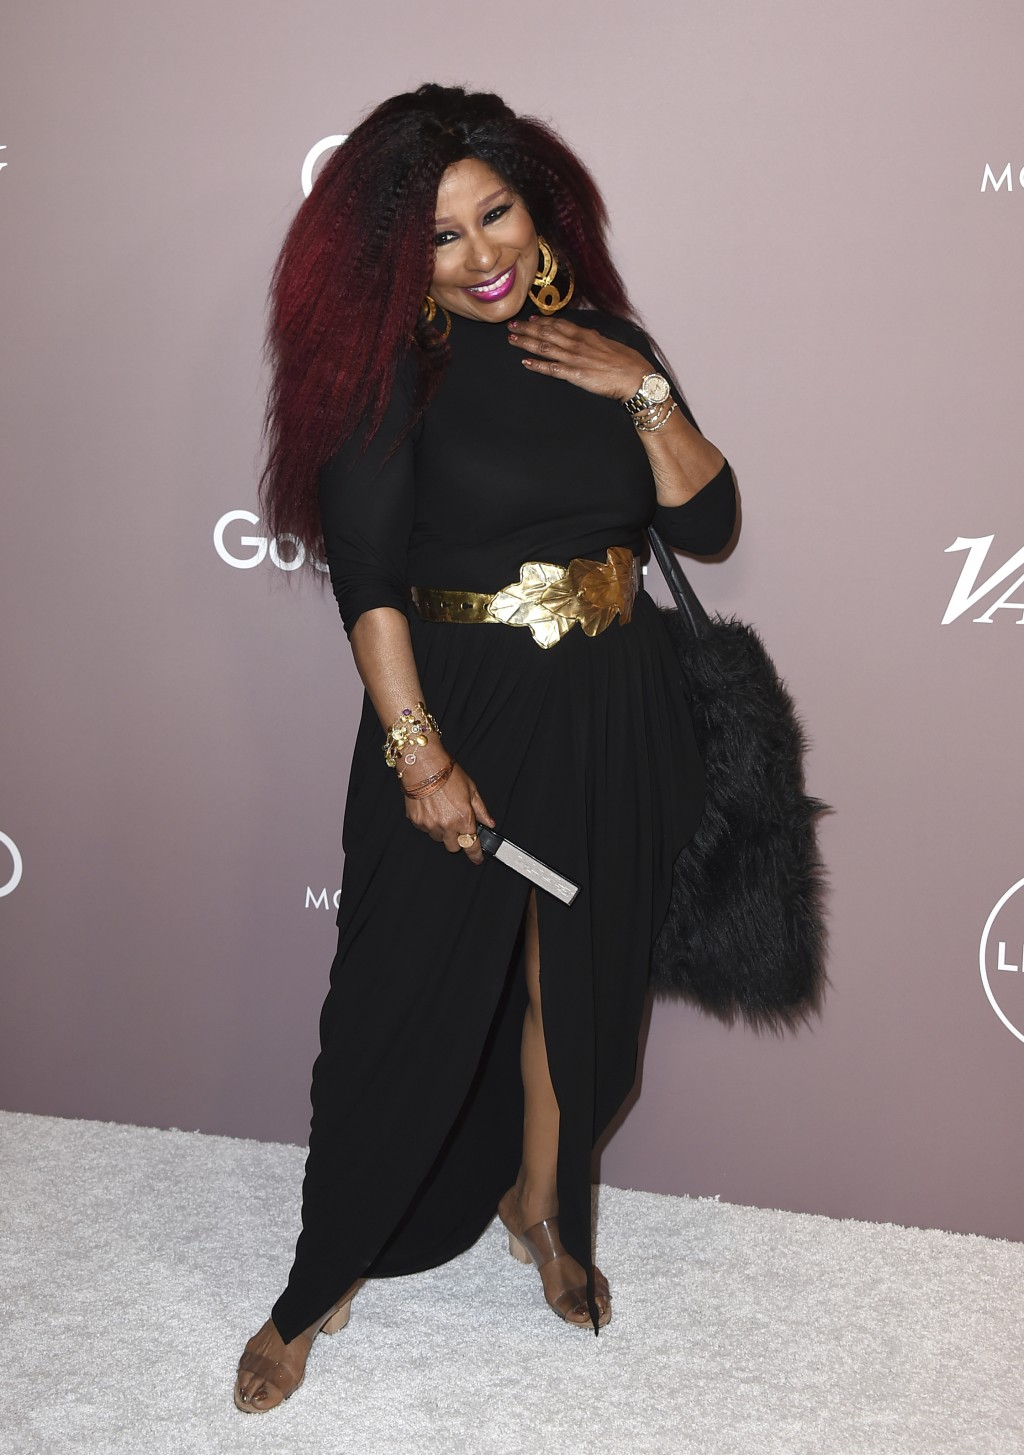 Chaka Khan arrives at Variety's Power of Women on Friday, Oct. 11, 2019, at the Beverly Wilshire hotel in Beverly Hills, Calif. (Photo by Jordan Strau